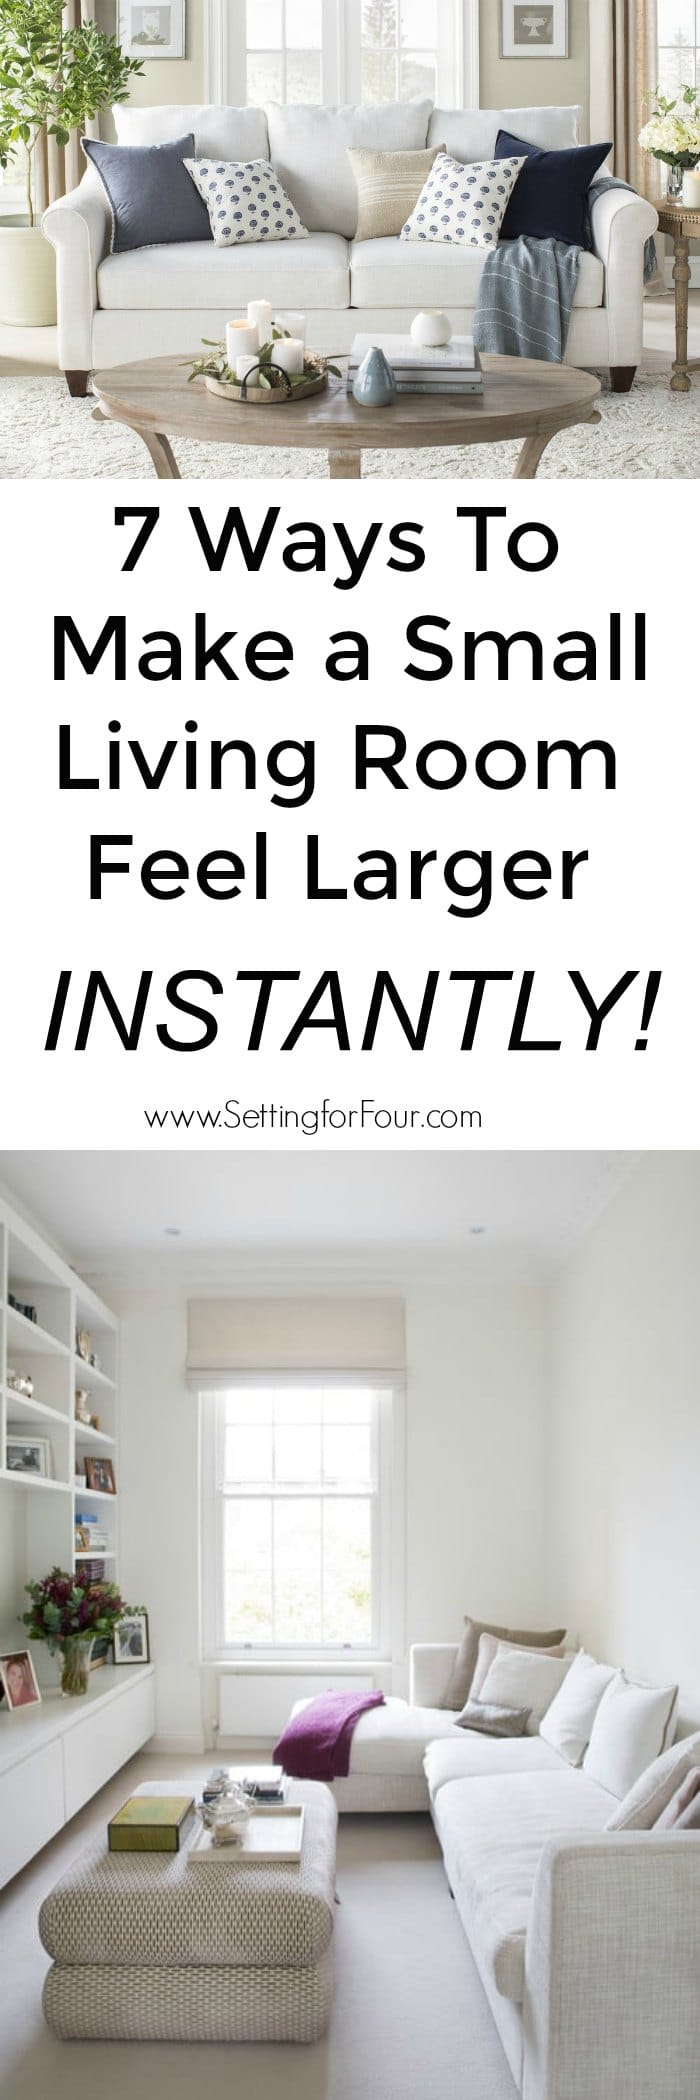 7 Ways To Make A Small Living Room Feel Larger Instantly! #small #livingroom #larger #bigger #decor #decorideas #decorations #interiordesign #design